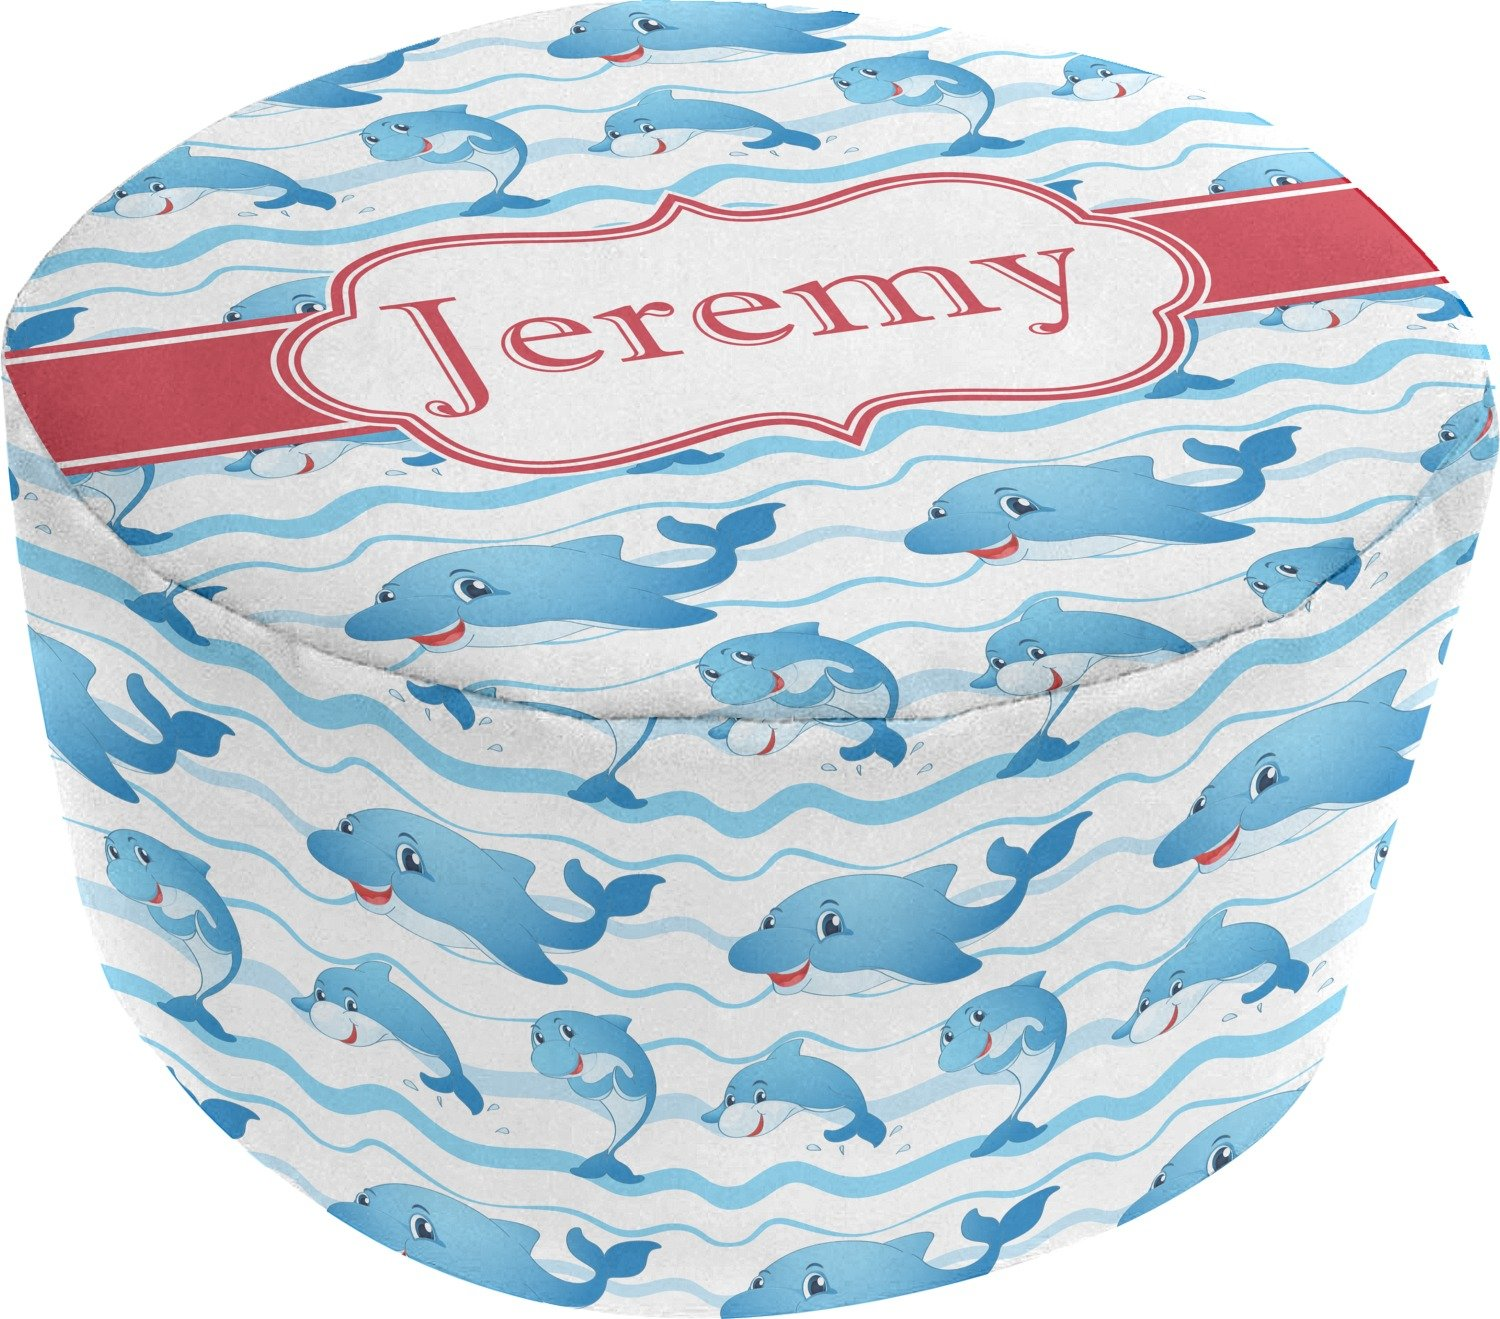 Dolphins Round Pouf Ottoman (Personalized)